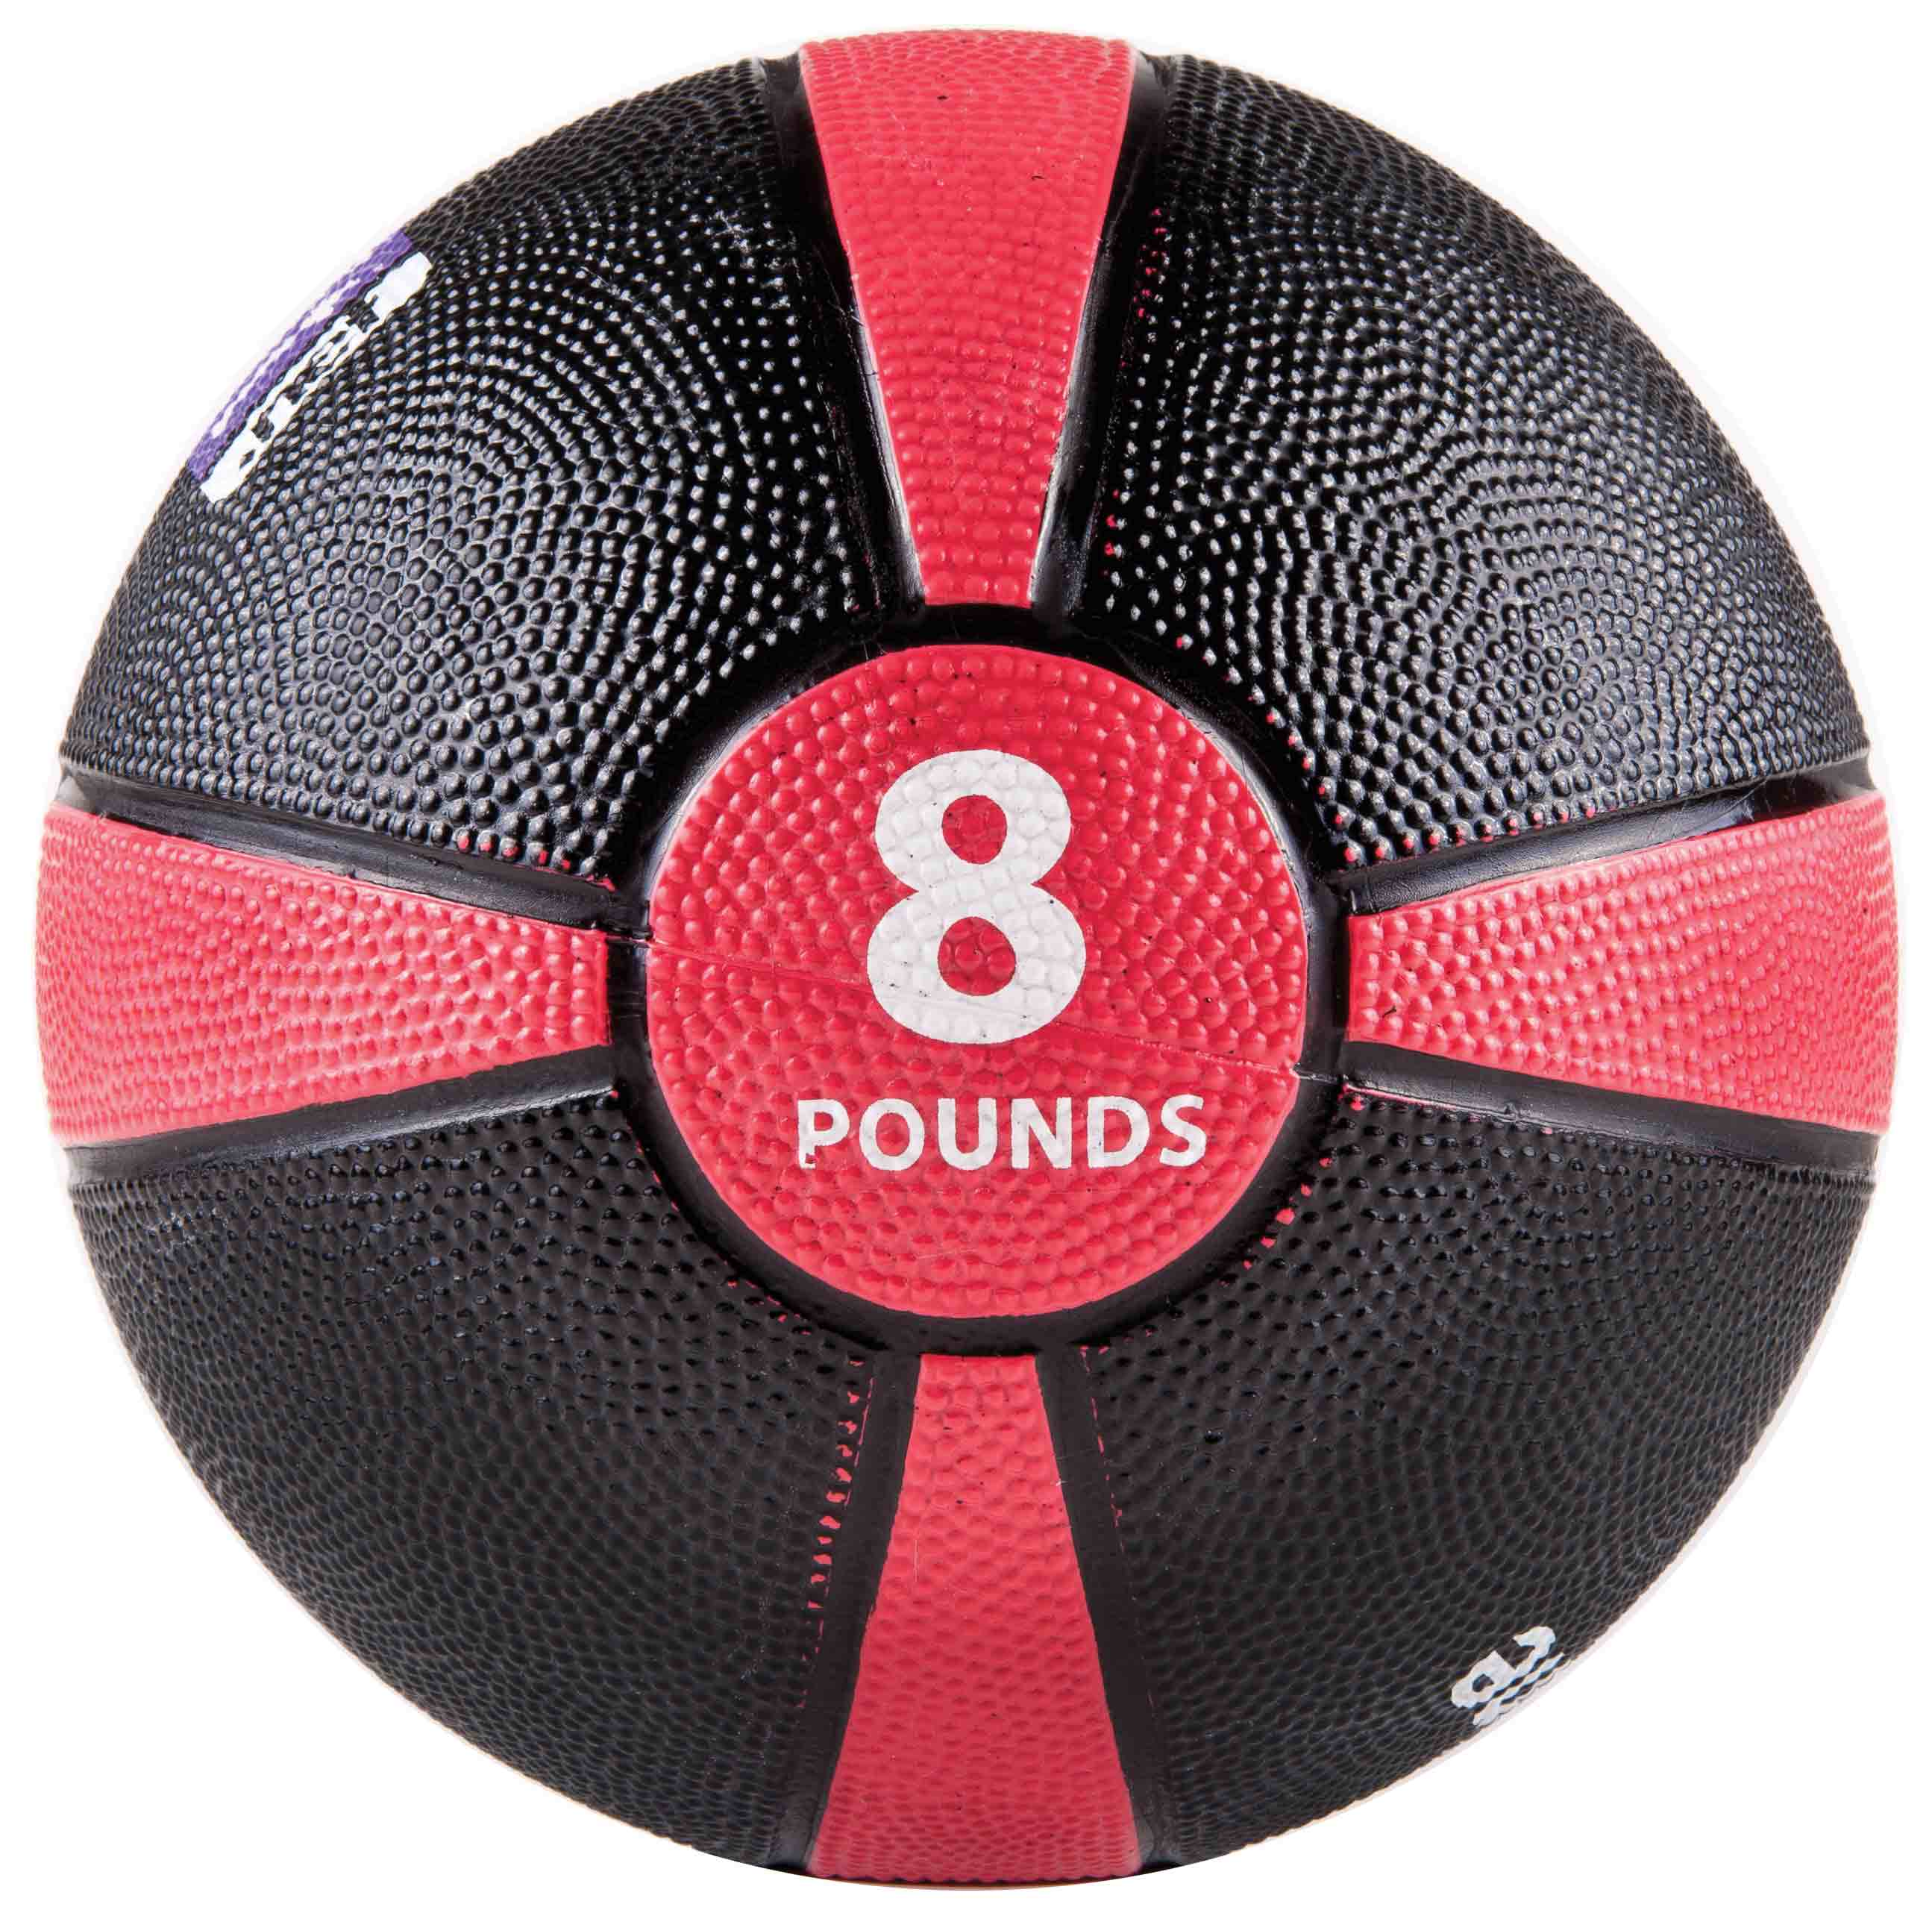 Rubber Medicine Ball with Training Manual - 8lb Red/Black